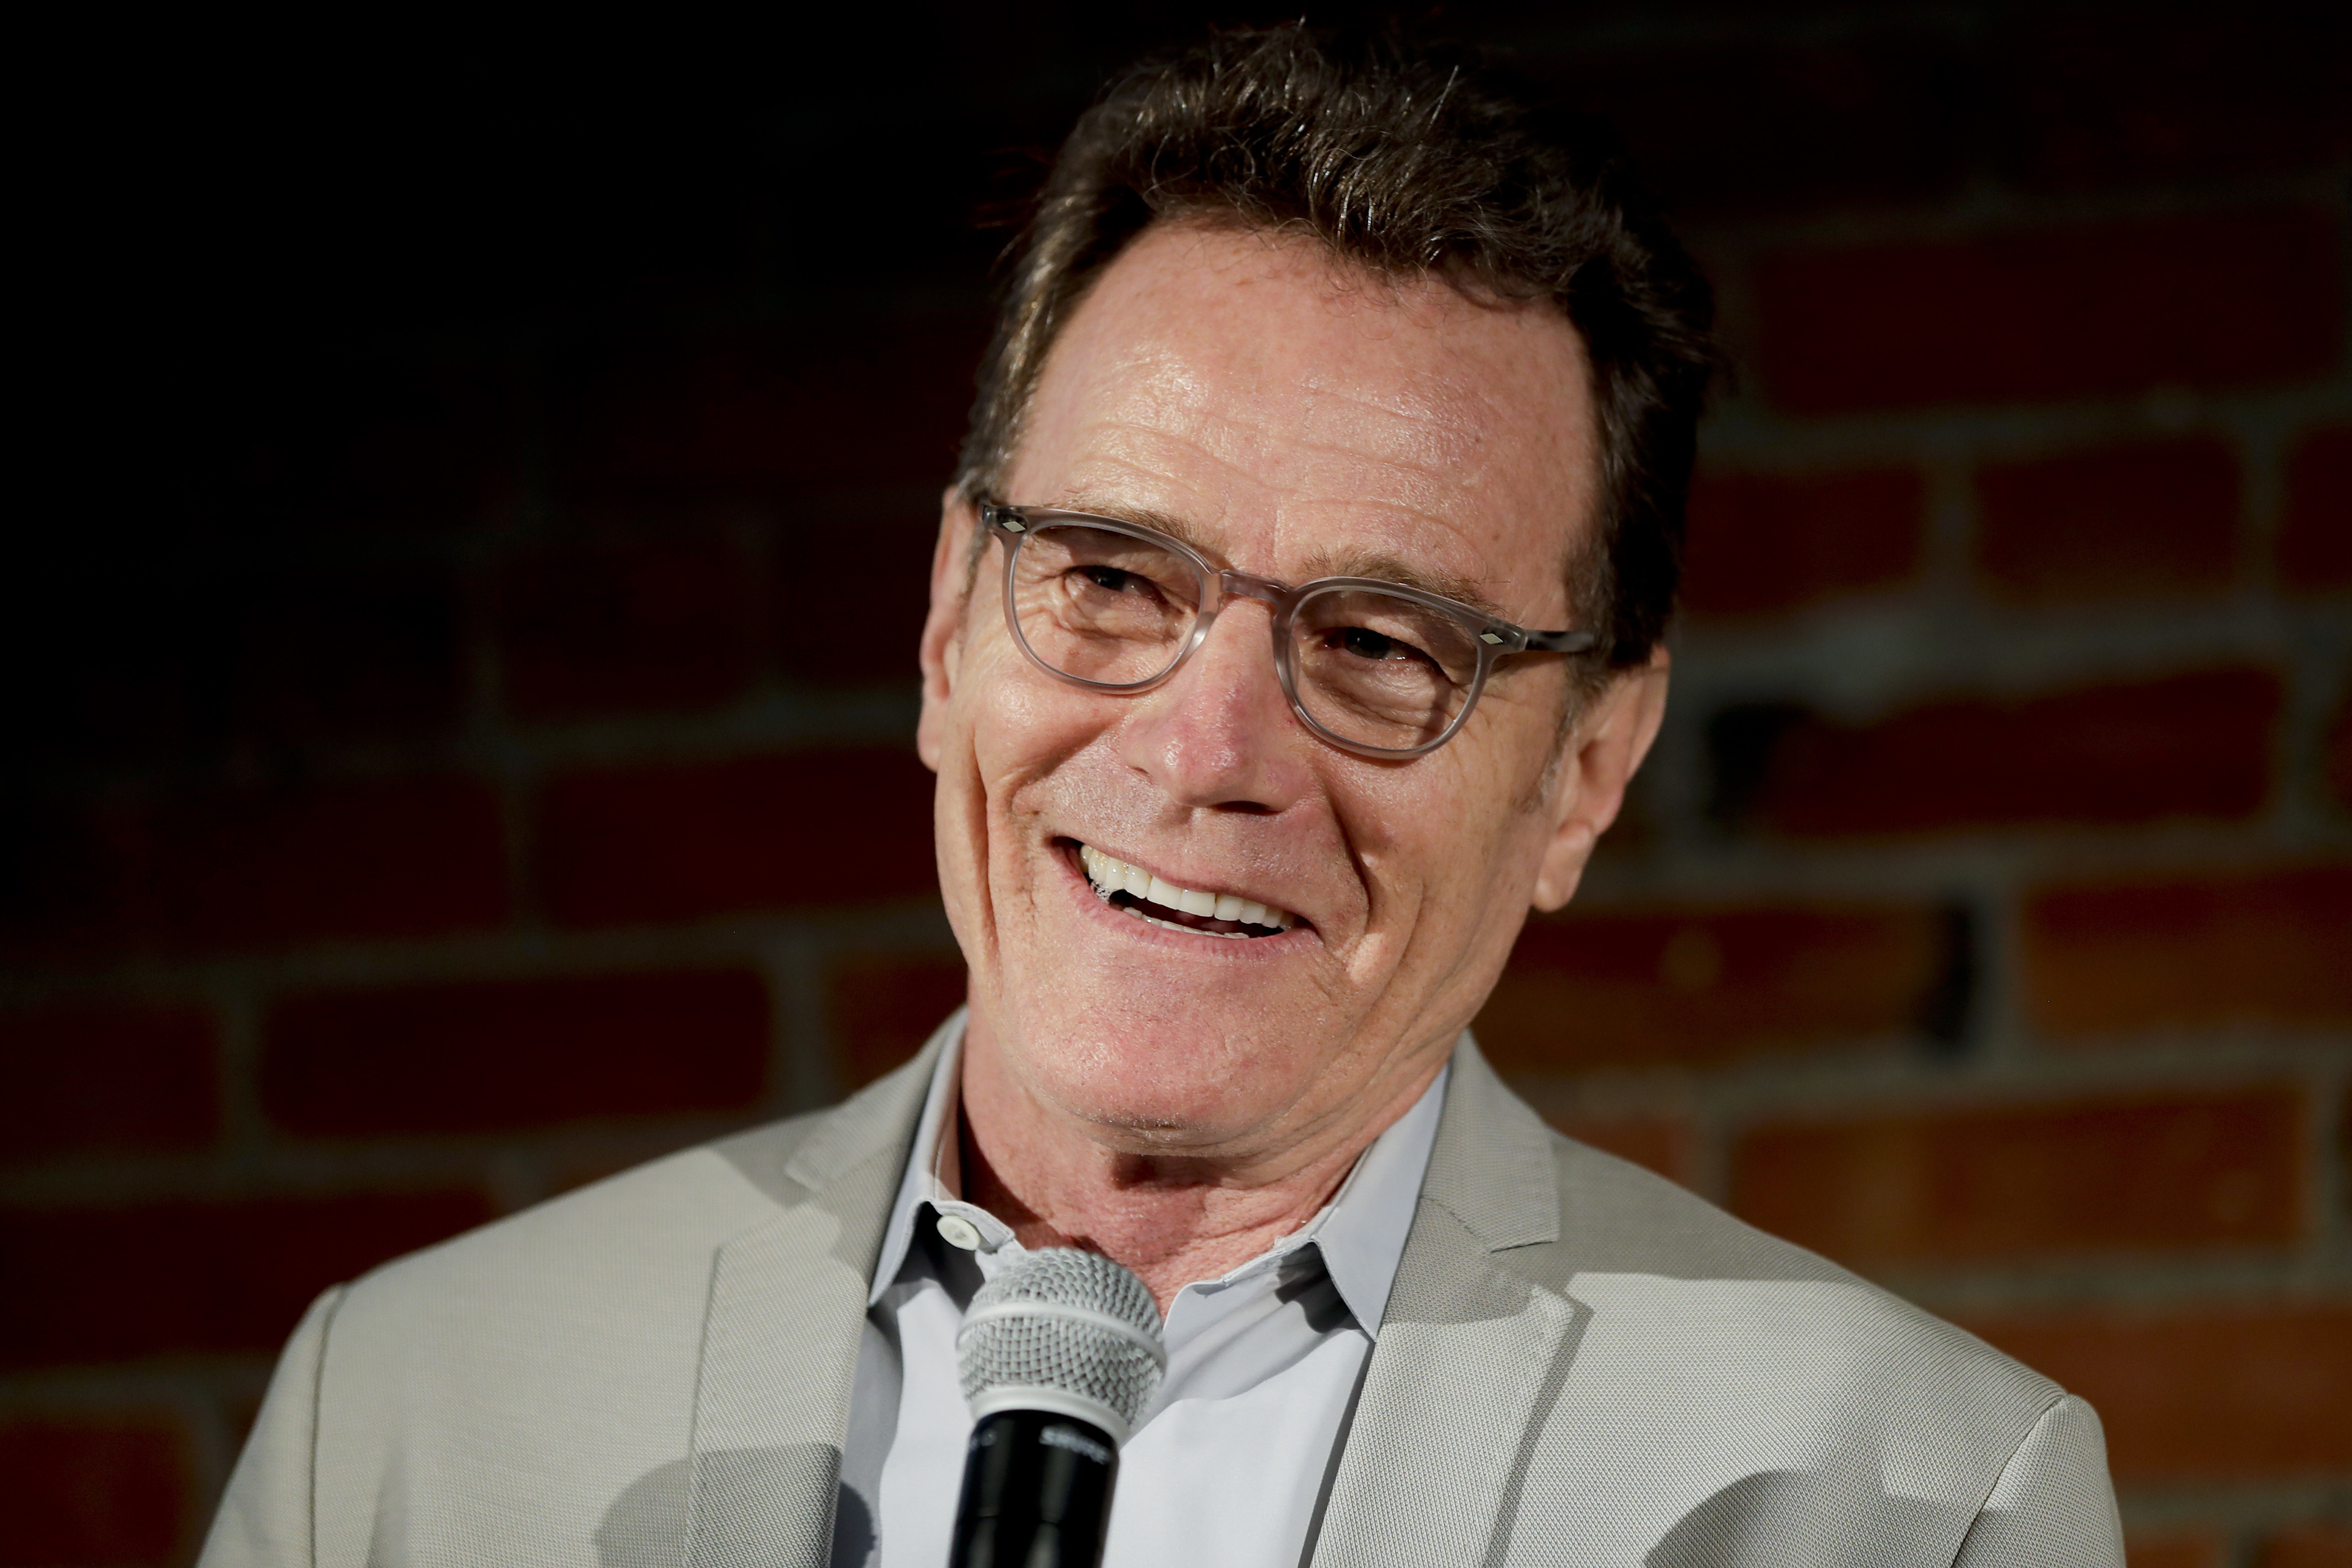 Bryan Cranston Lost His Virginity To A Prostitute In Amsterdam